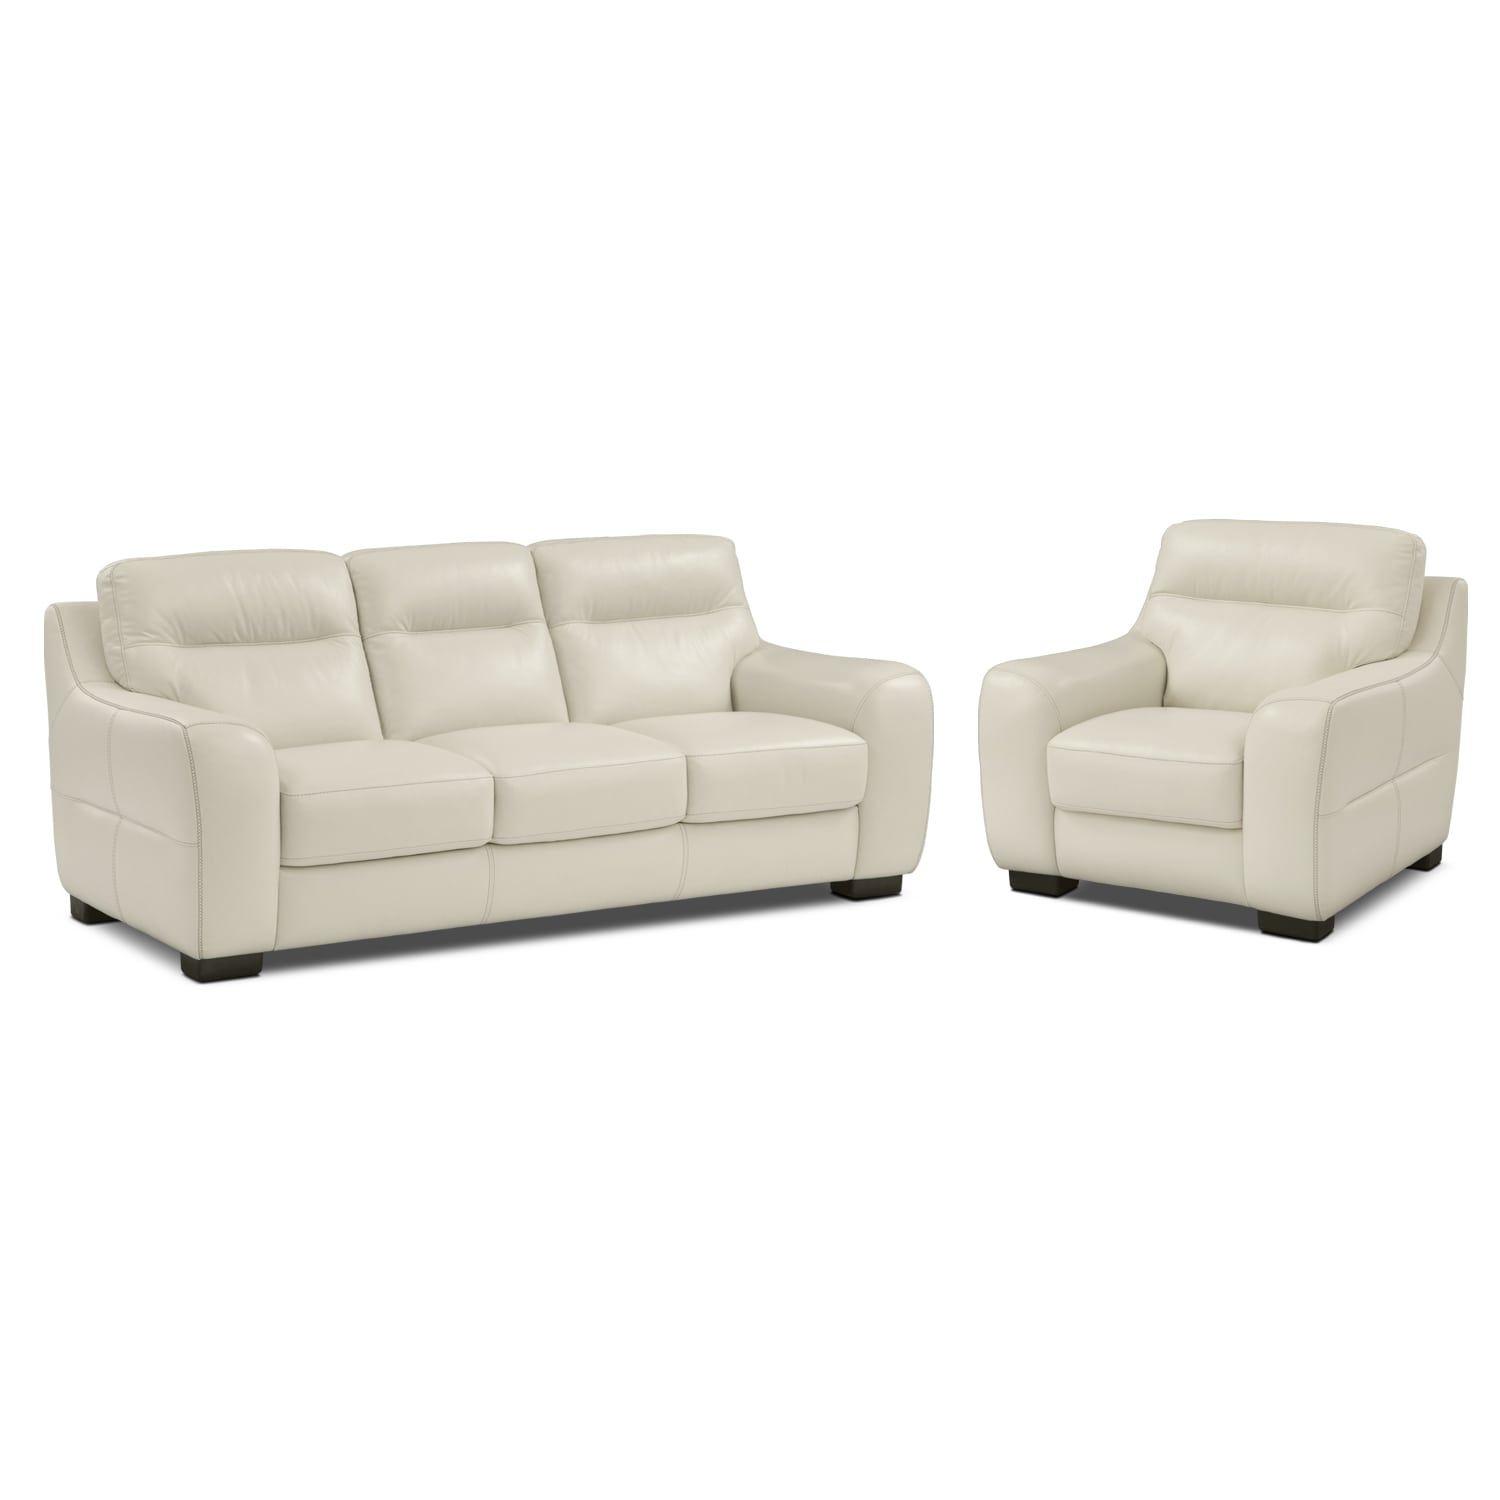 Living Room Furniture - Rocco Snow 2 Pc. Living Room w/ Chair